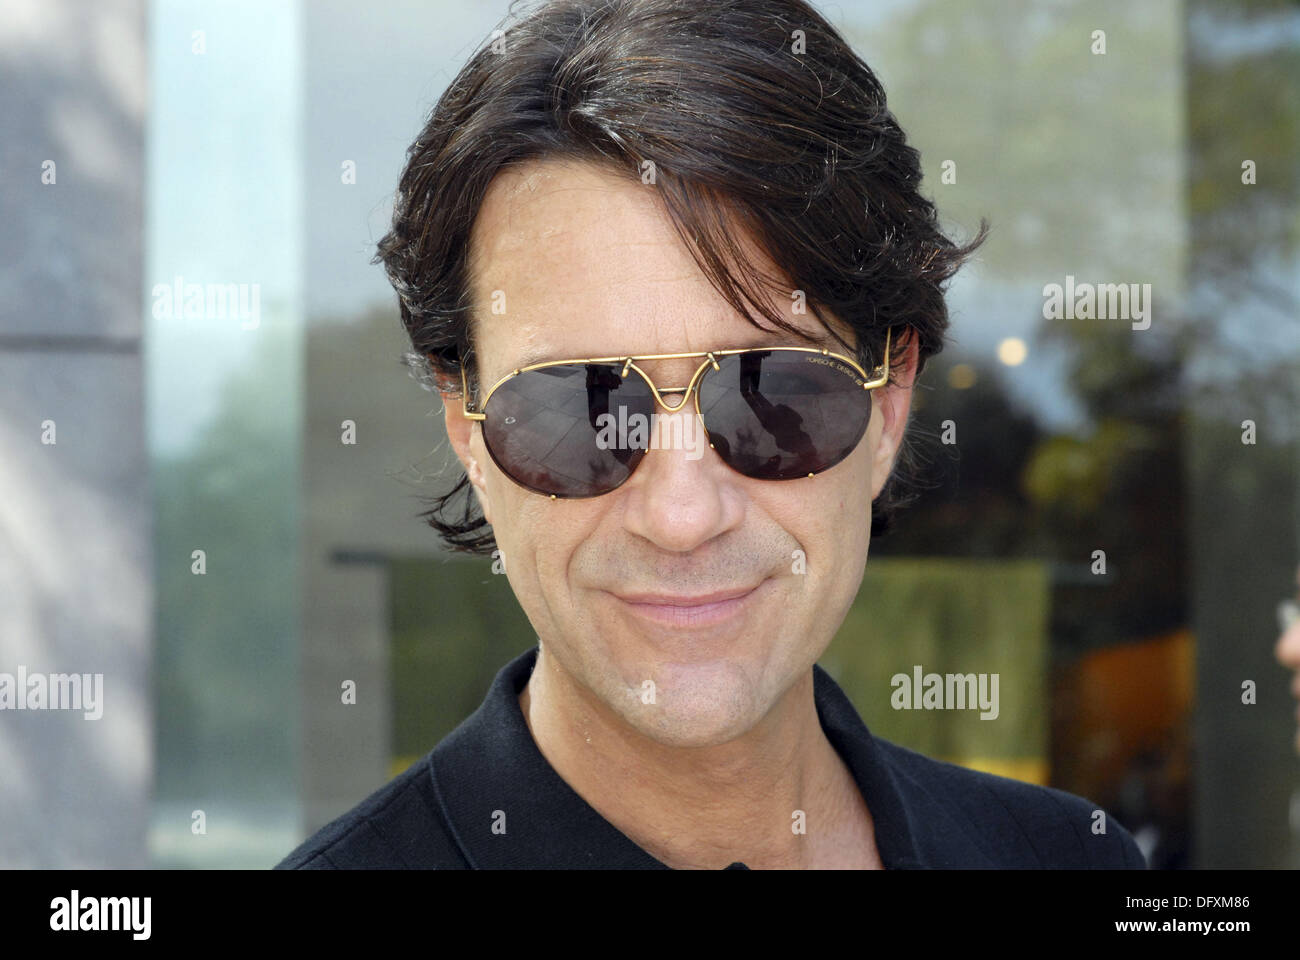 40-45 year old caucasian male, wearing sunglasses, close - up - Stock Image